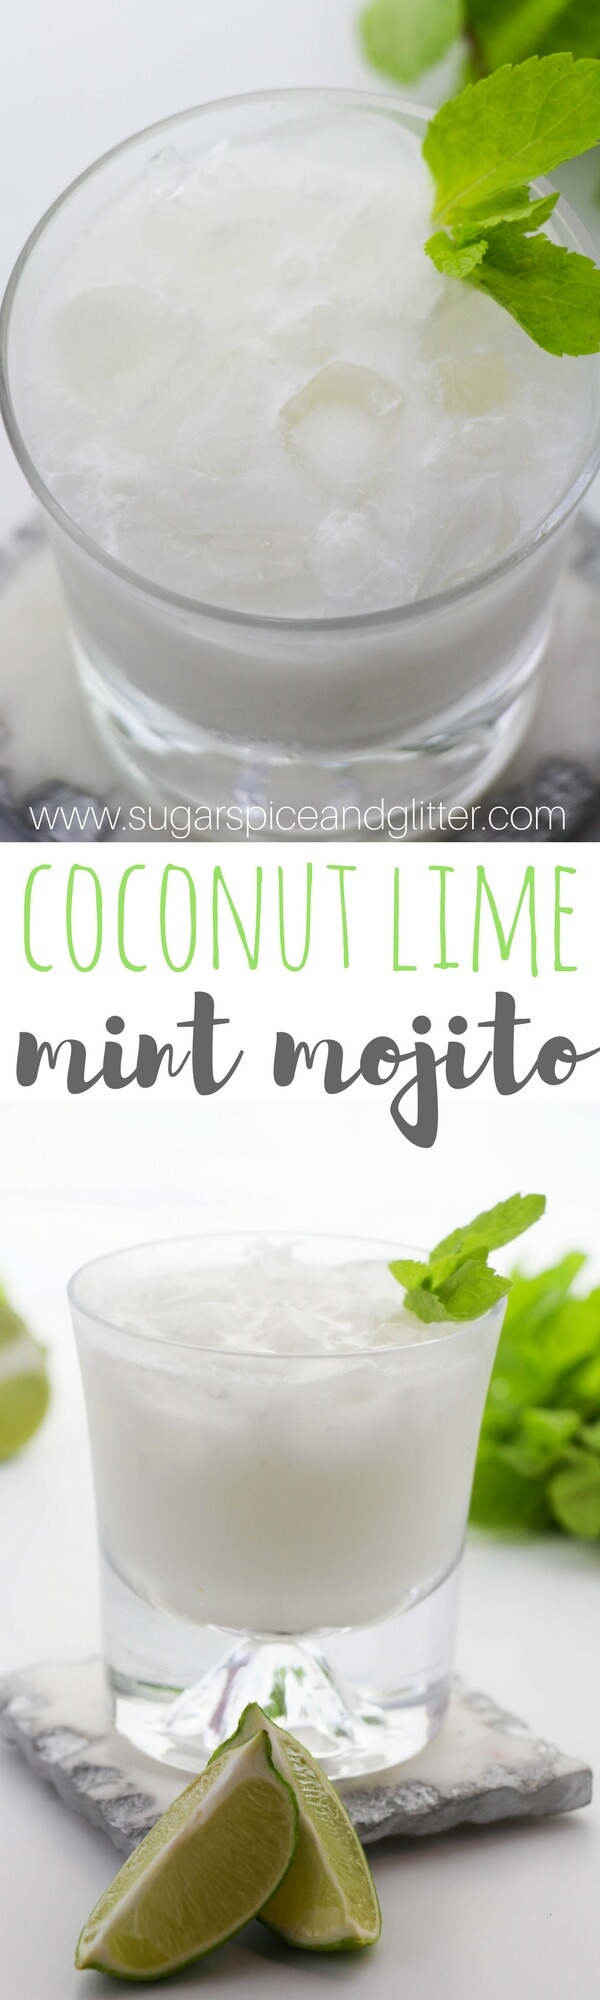 Coconut cocktail recipe - a fun mojito recipe made with coconut milk, lime juice, mint and rum. The perfect summer rum cocktail recipe